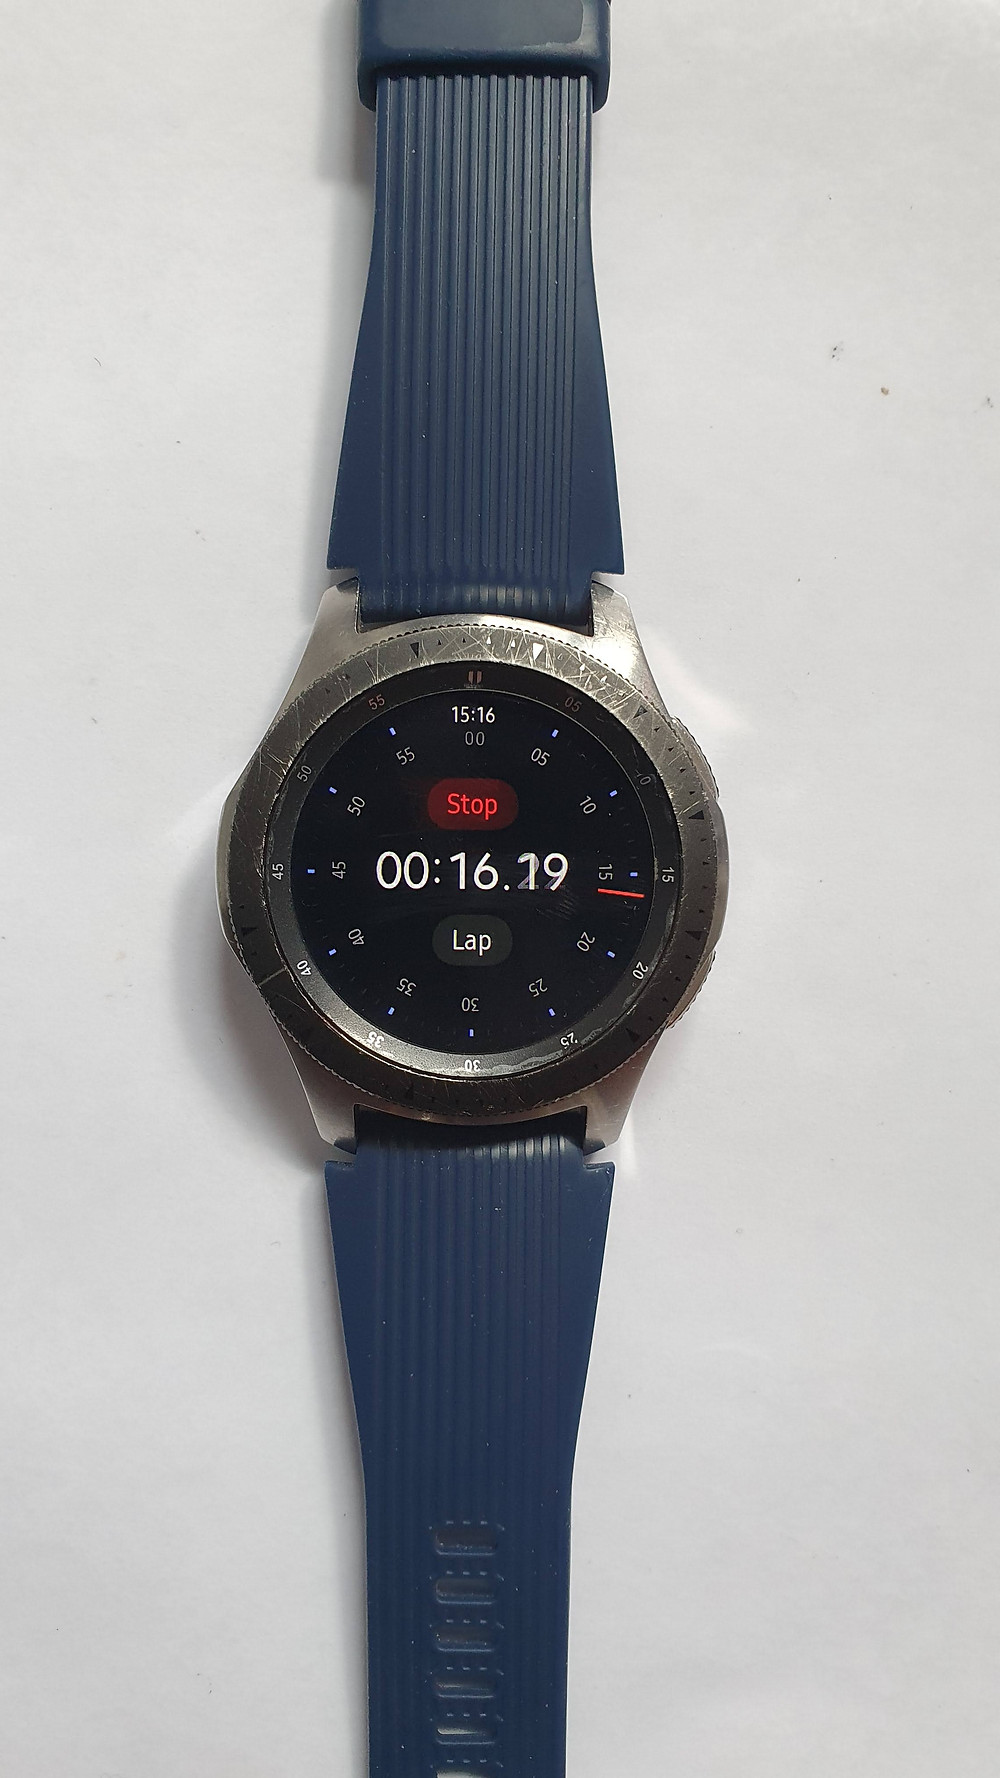 Samsung Galaxy Watch showing stopwatch function